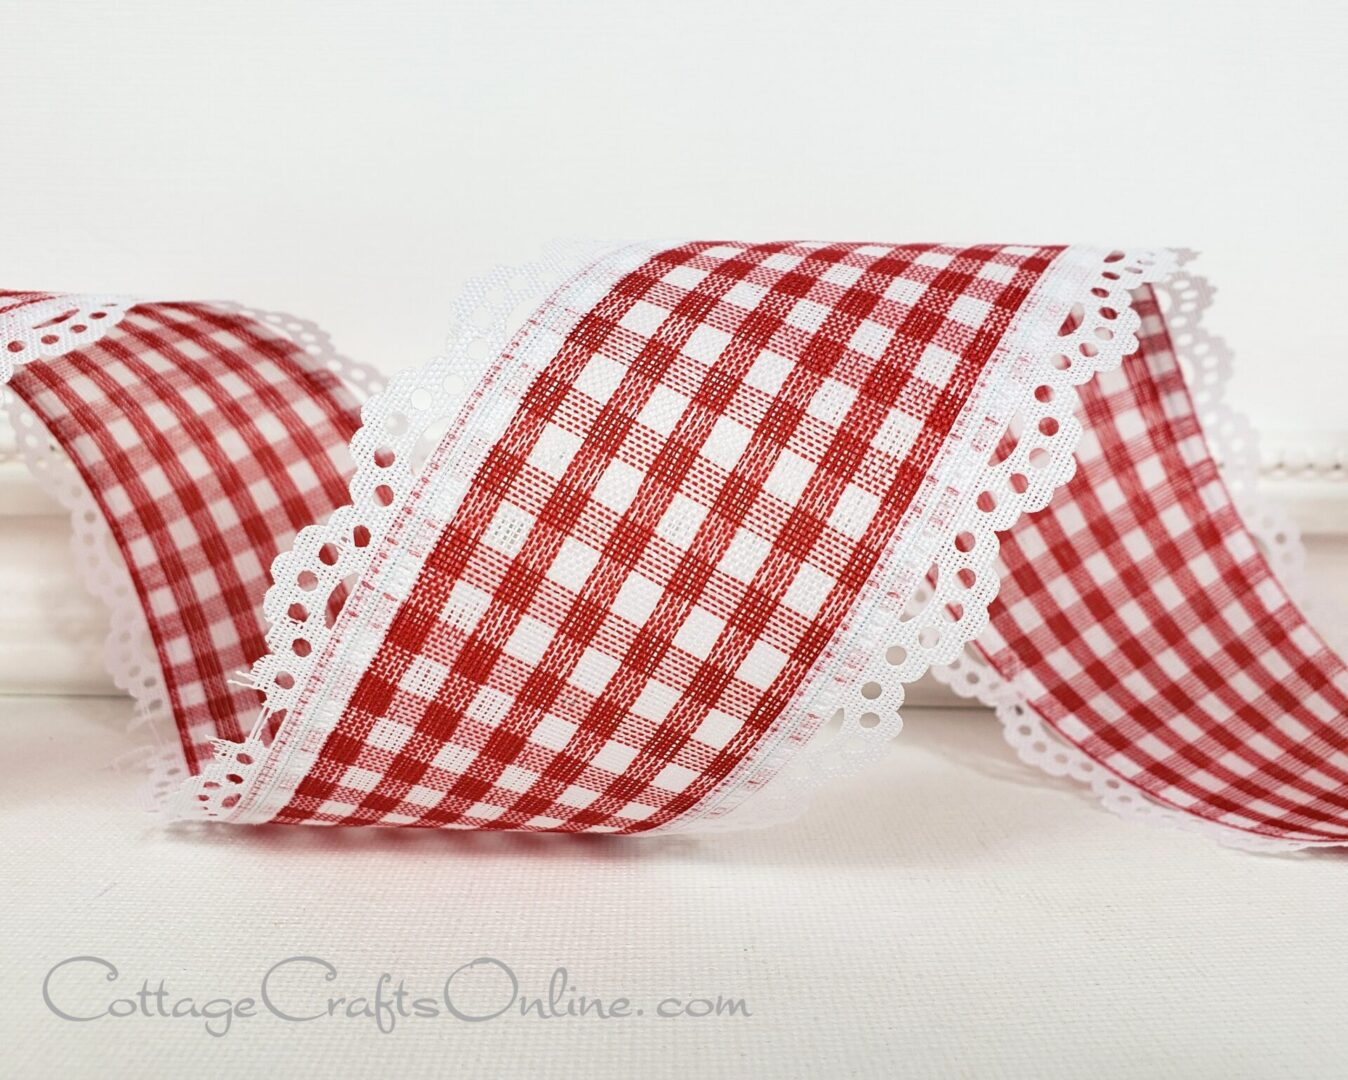 red scallop edged gingham cb 40-003